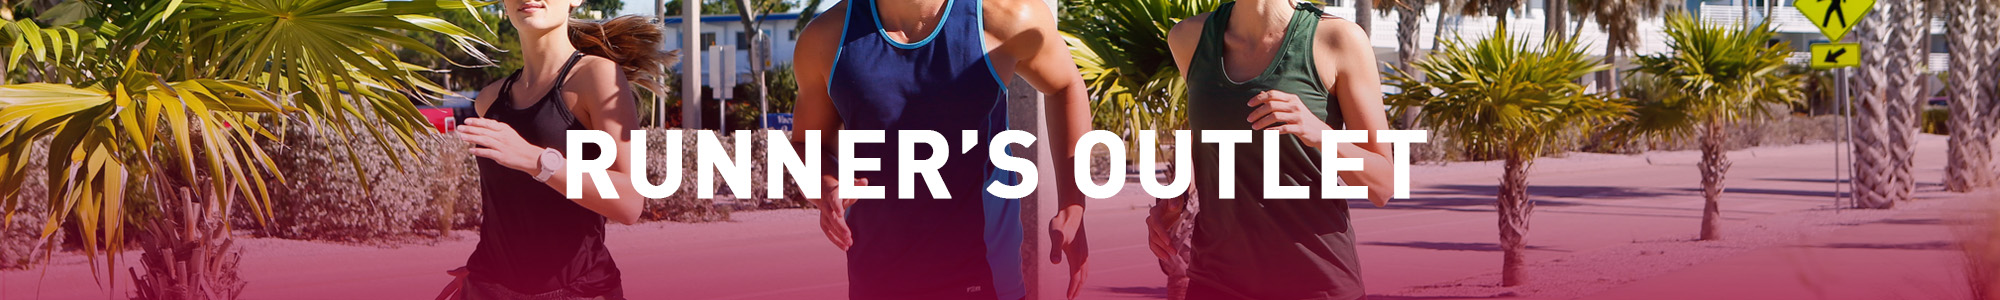 Shop Our Whole Runner's Outlet